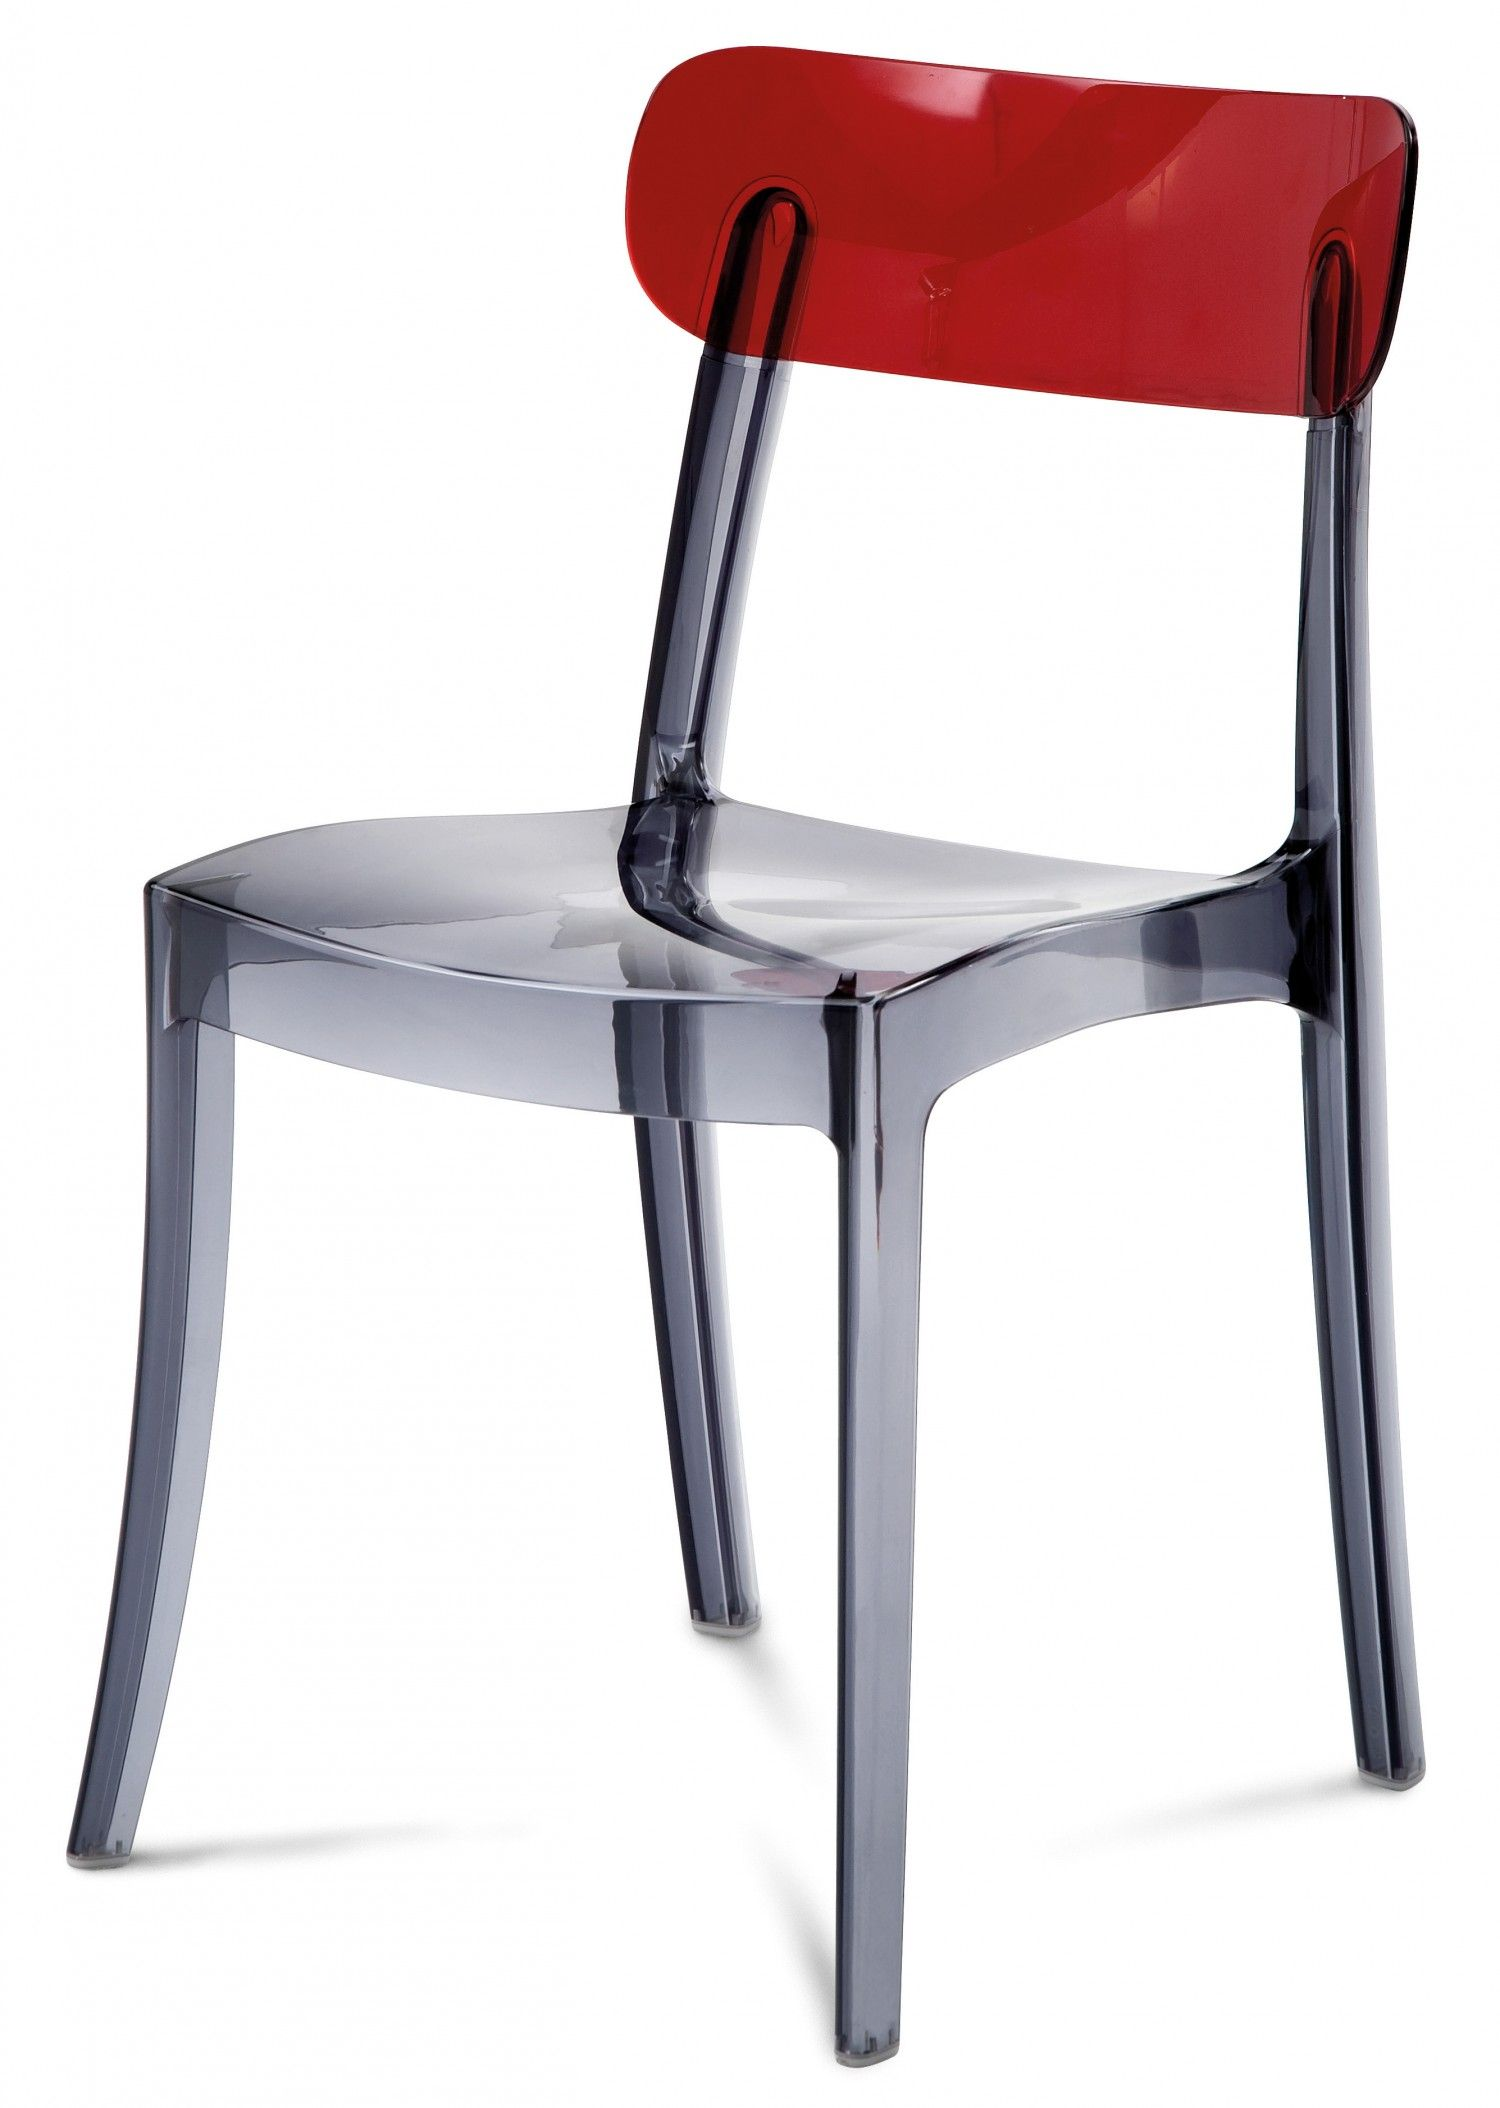 Domitalia new retro stacking chairtransparent red